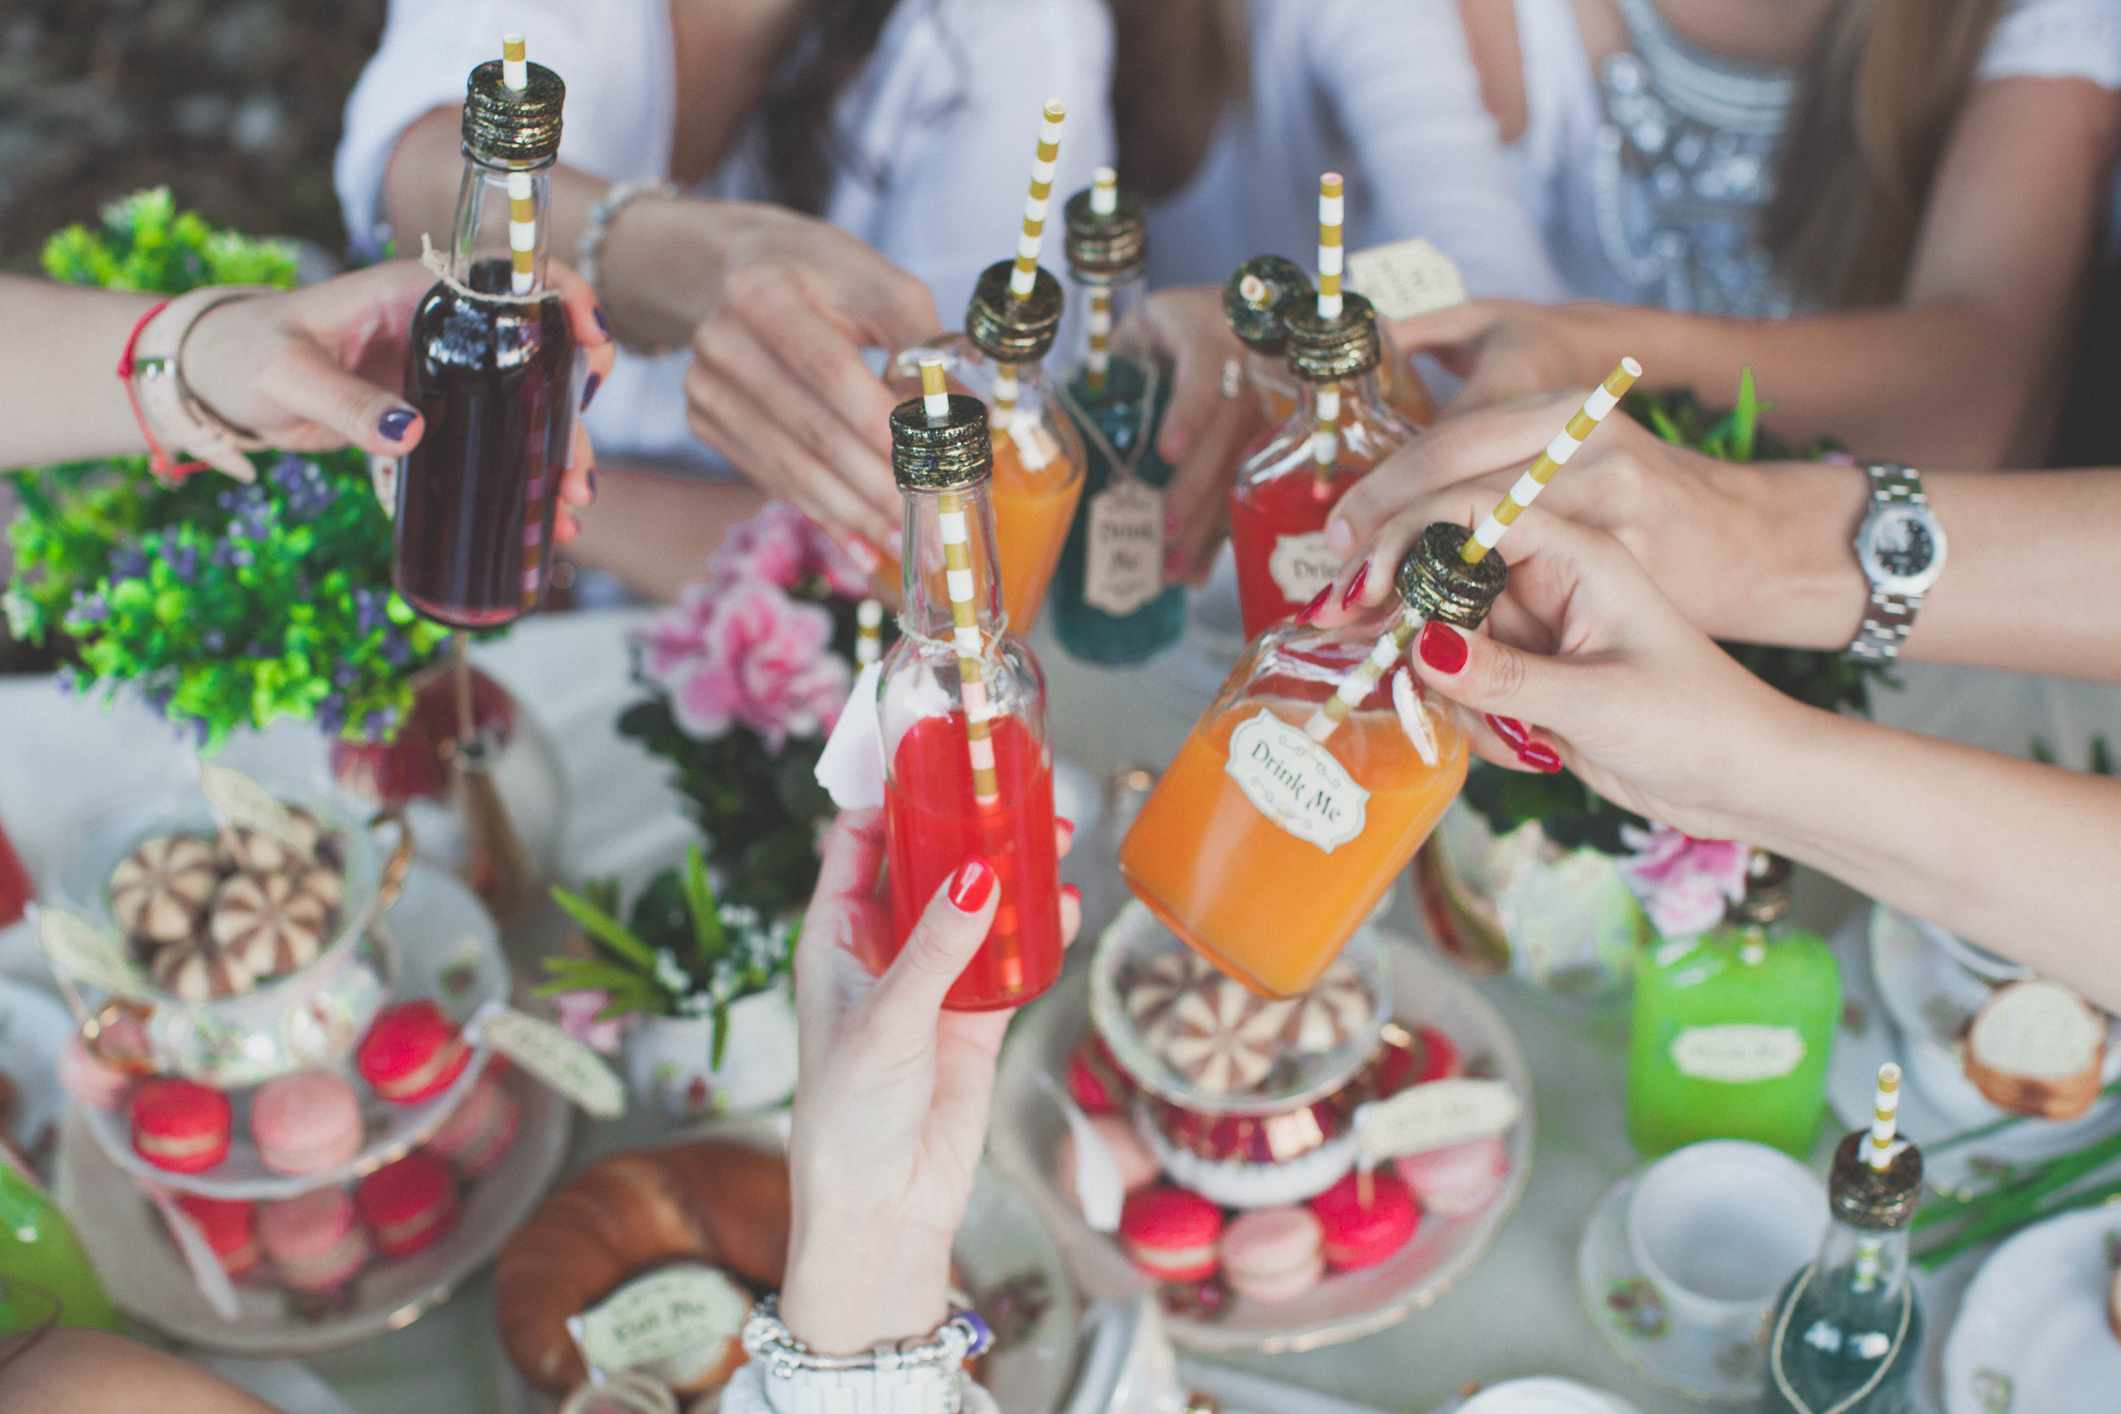 Tea Party with drinks and sweets